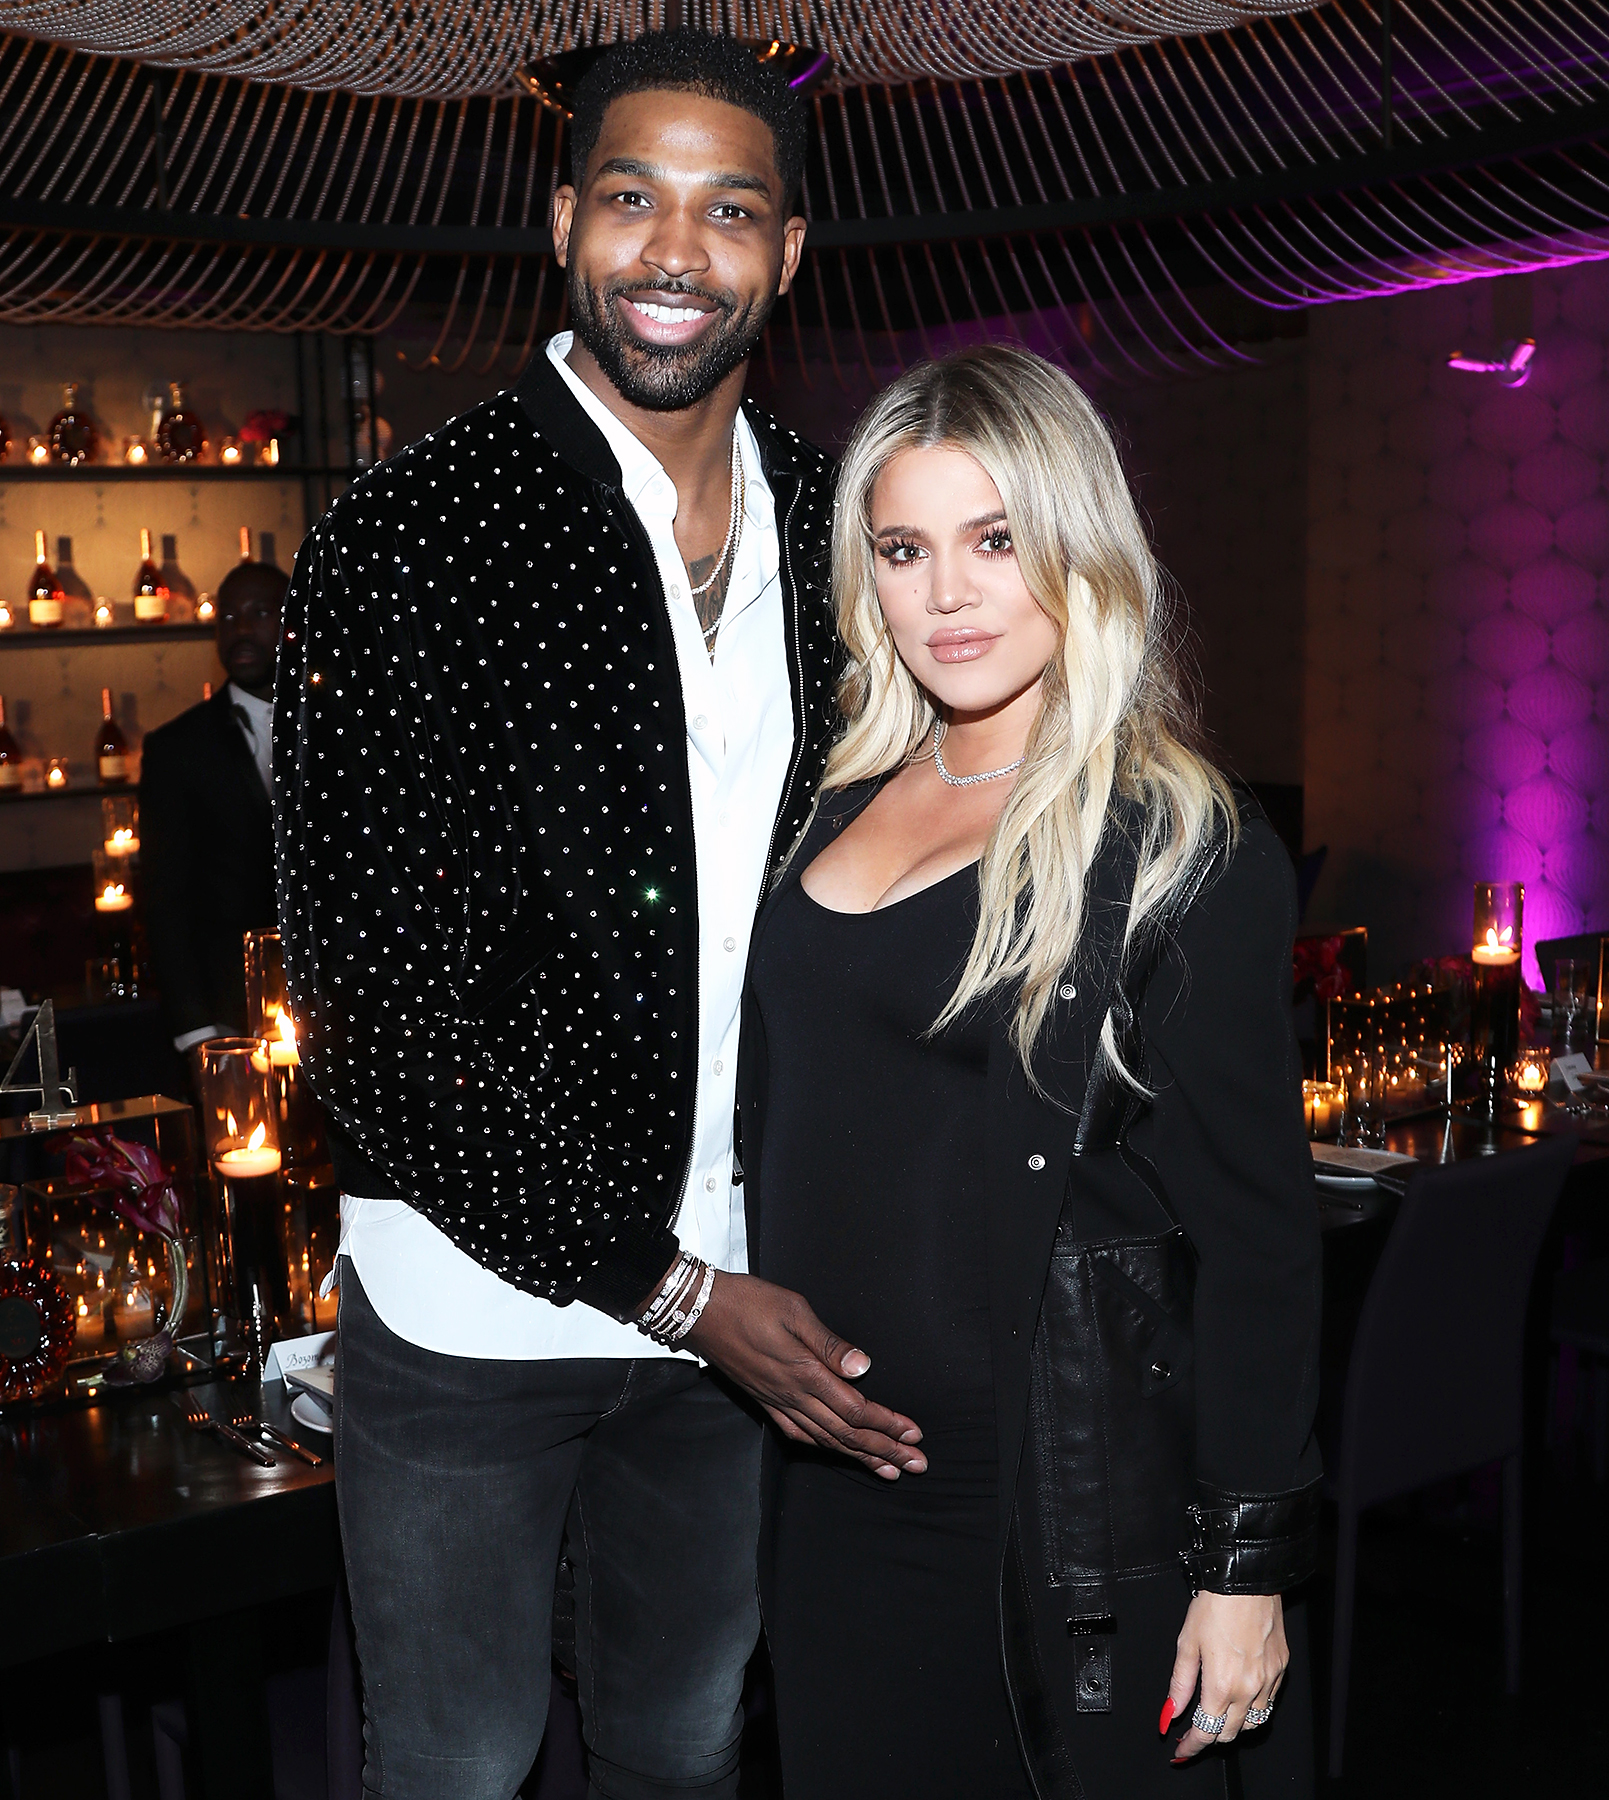 0ad59973f4392 Khloe Kardashian Says She and Tristan Thompson 'Are Ready Whenever' for  Birth of Their Baby Girl